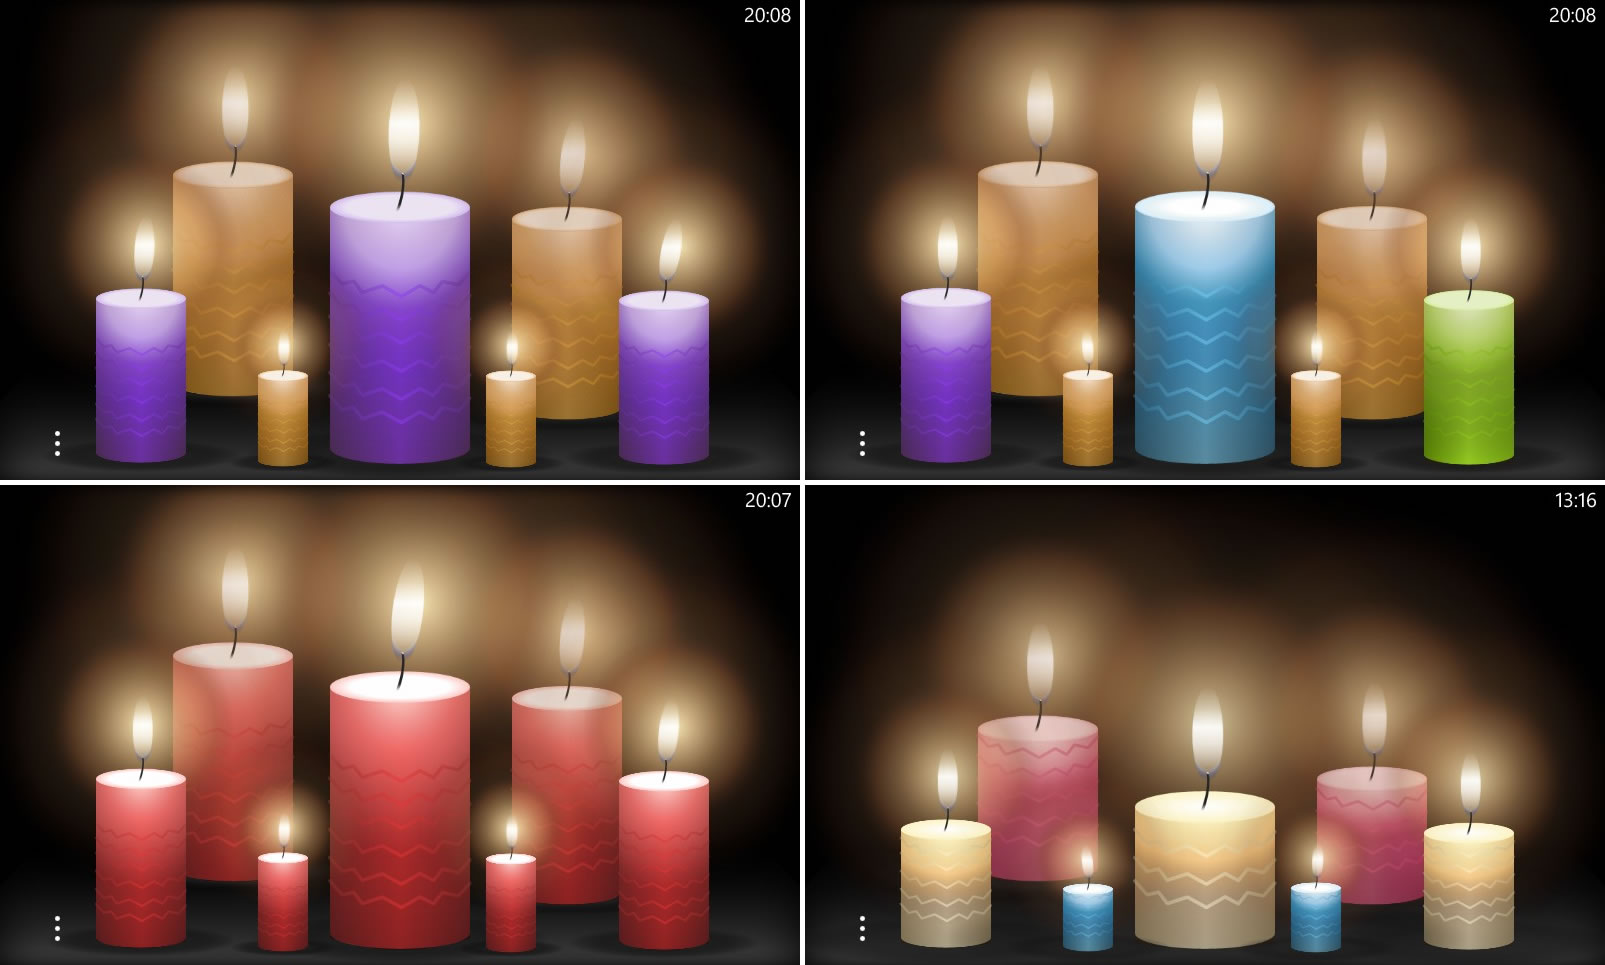 Different Candle Scenes